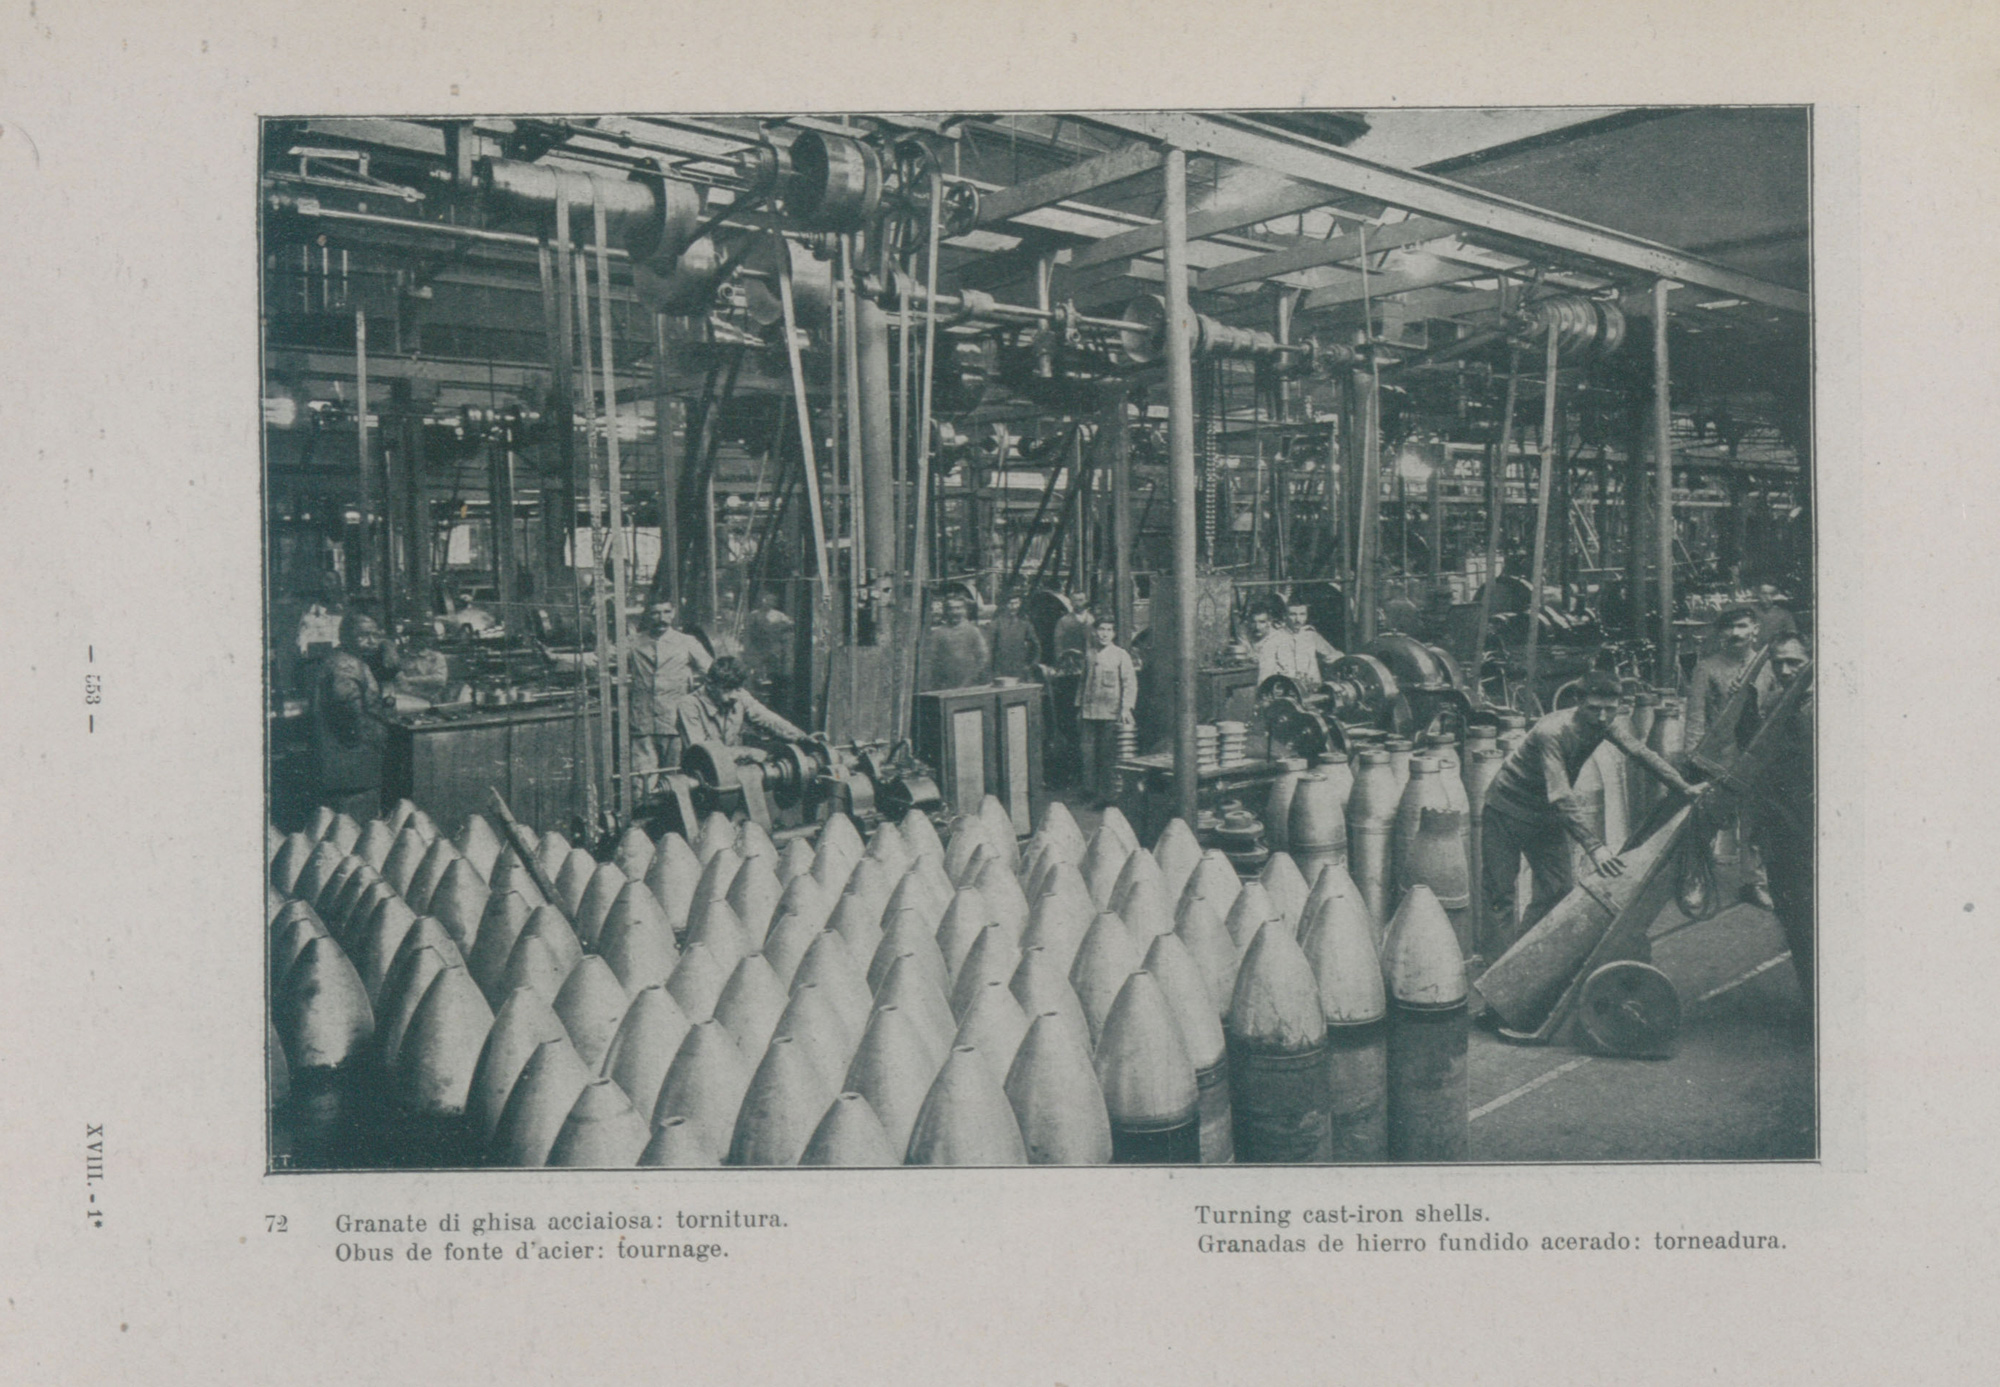 Photograph showing Italian workers - exempted from military service due to age or health reasons - making cast iron shells for bombs in a munitions factory.